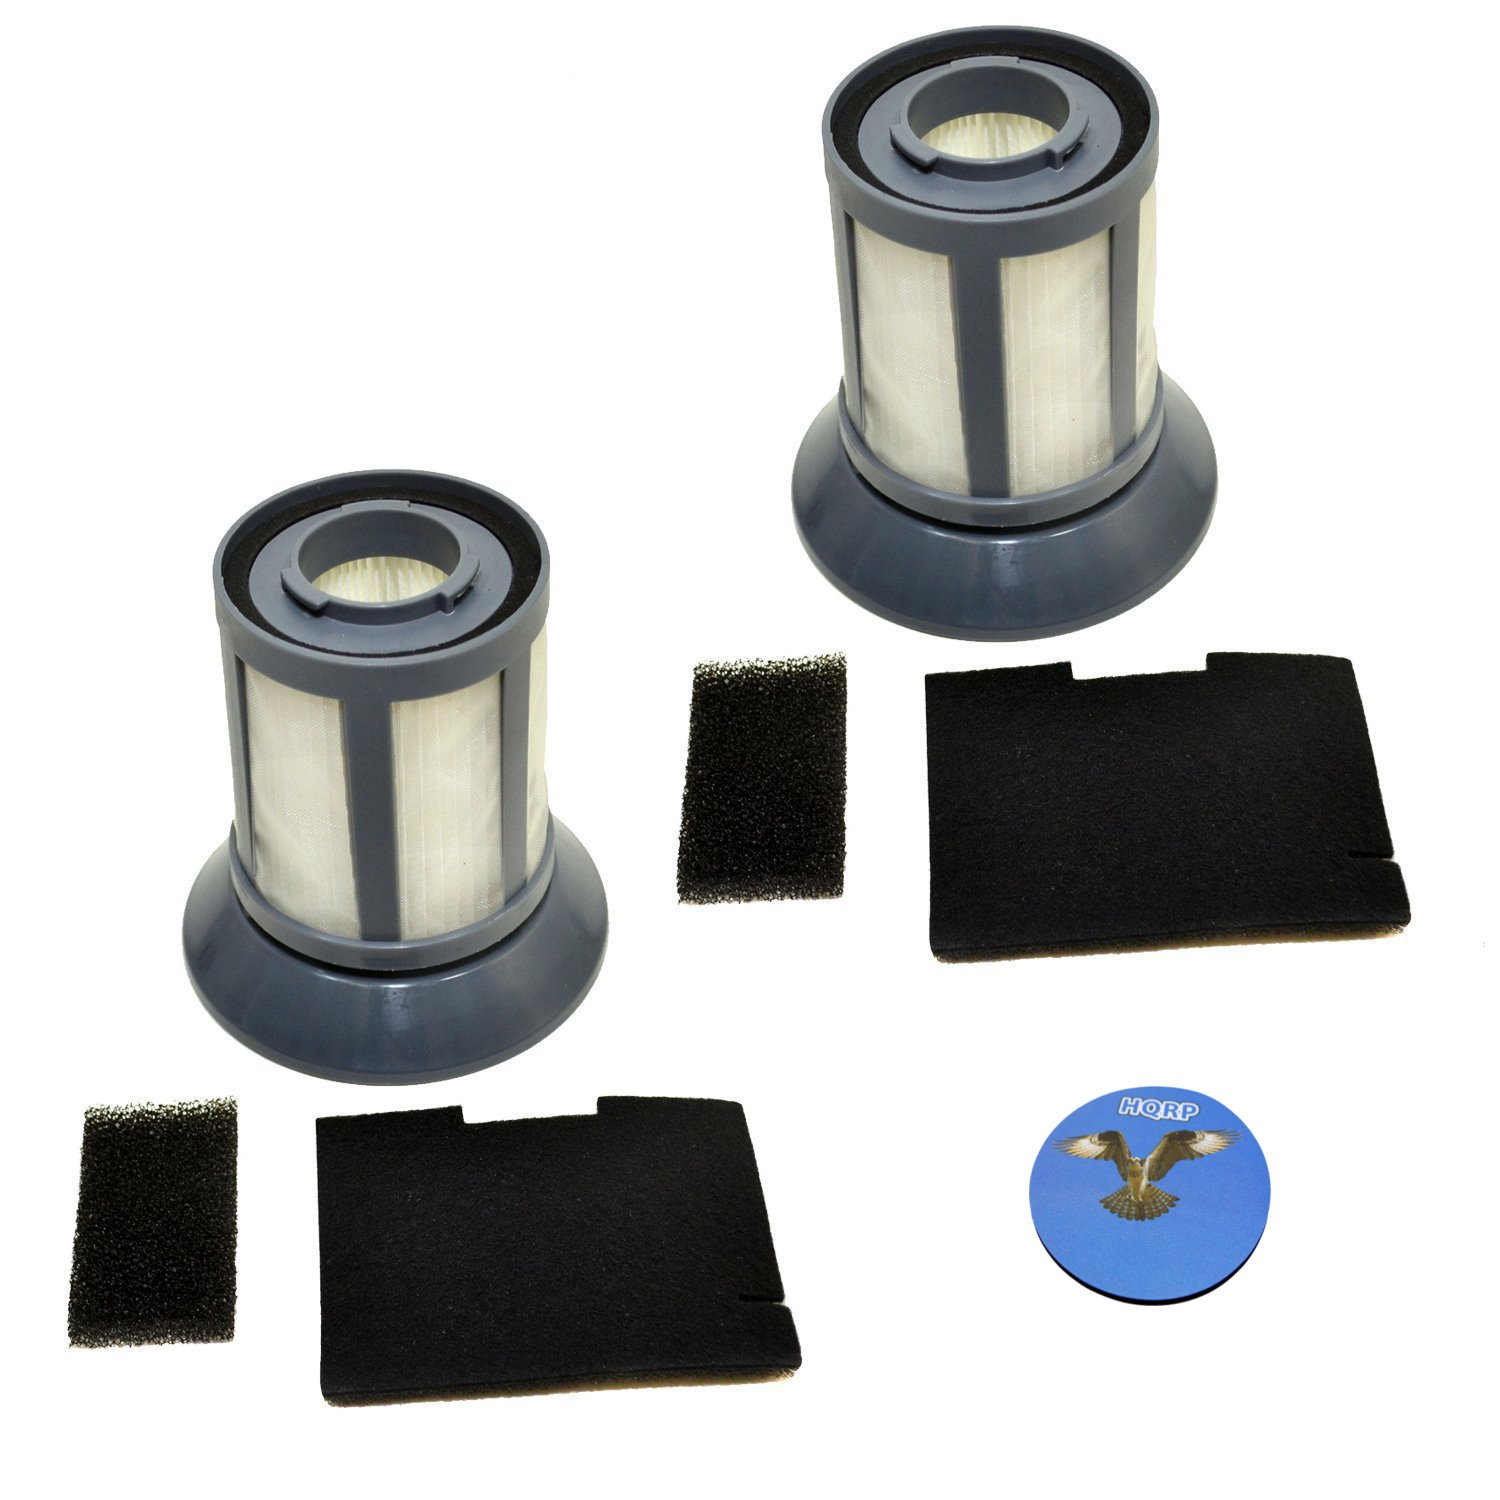 HQRP 2-pack Filter Set for Bissel 203-1532 Dirt Cup Filter, 203-1531 Filter Screen, 203-1533 Dirt Cup Filter Frame Base, 203-1534 / 203-1535 Pre & Post Motor Filters Replacement + HQRP Coaster